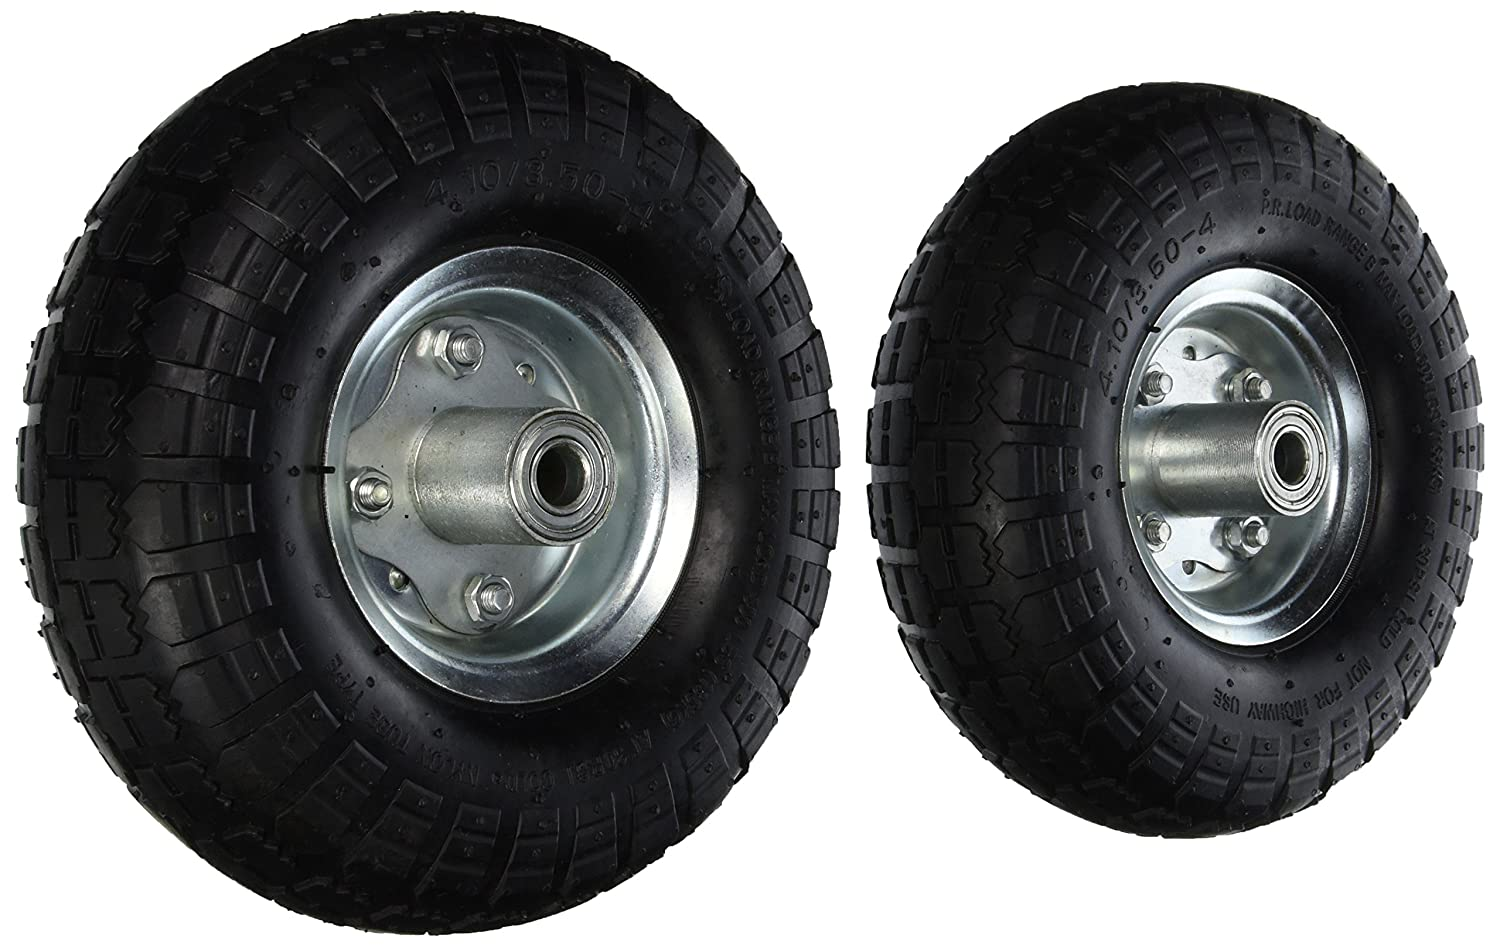 Pit Bull CHIT00122 NEW 10' AIR Tires Wheels 5/8'